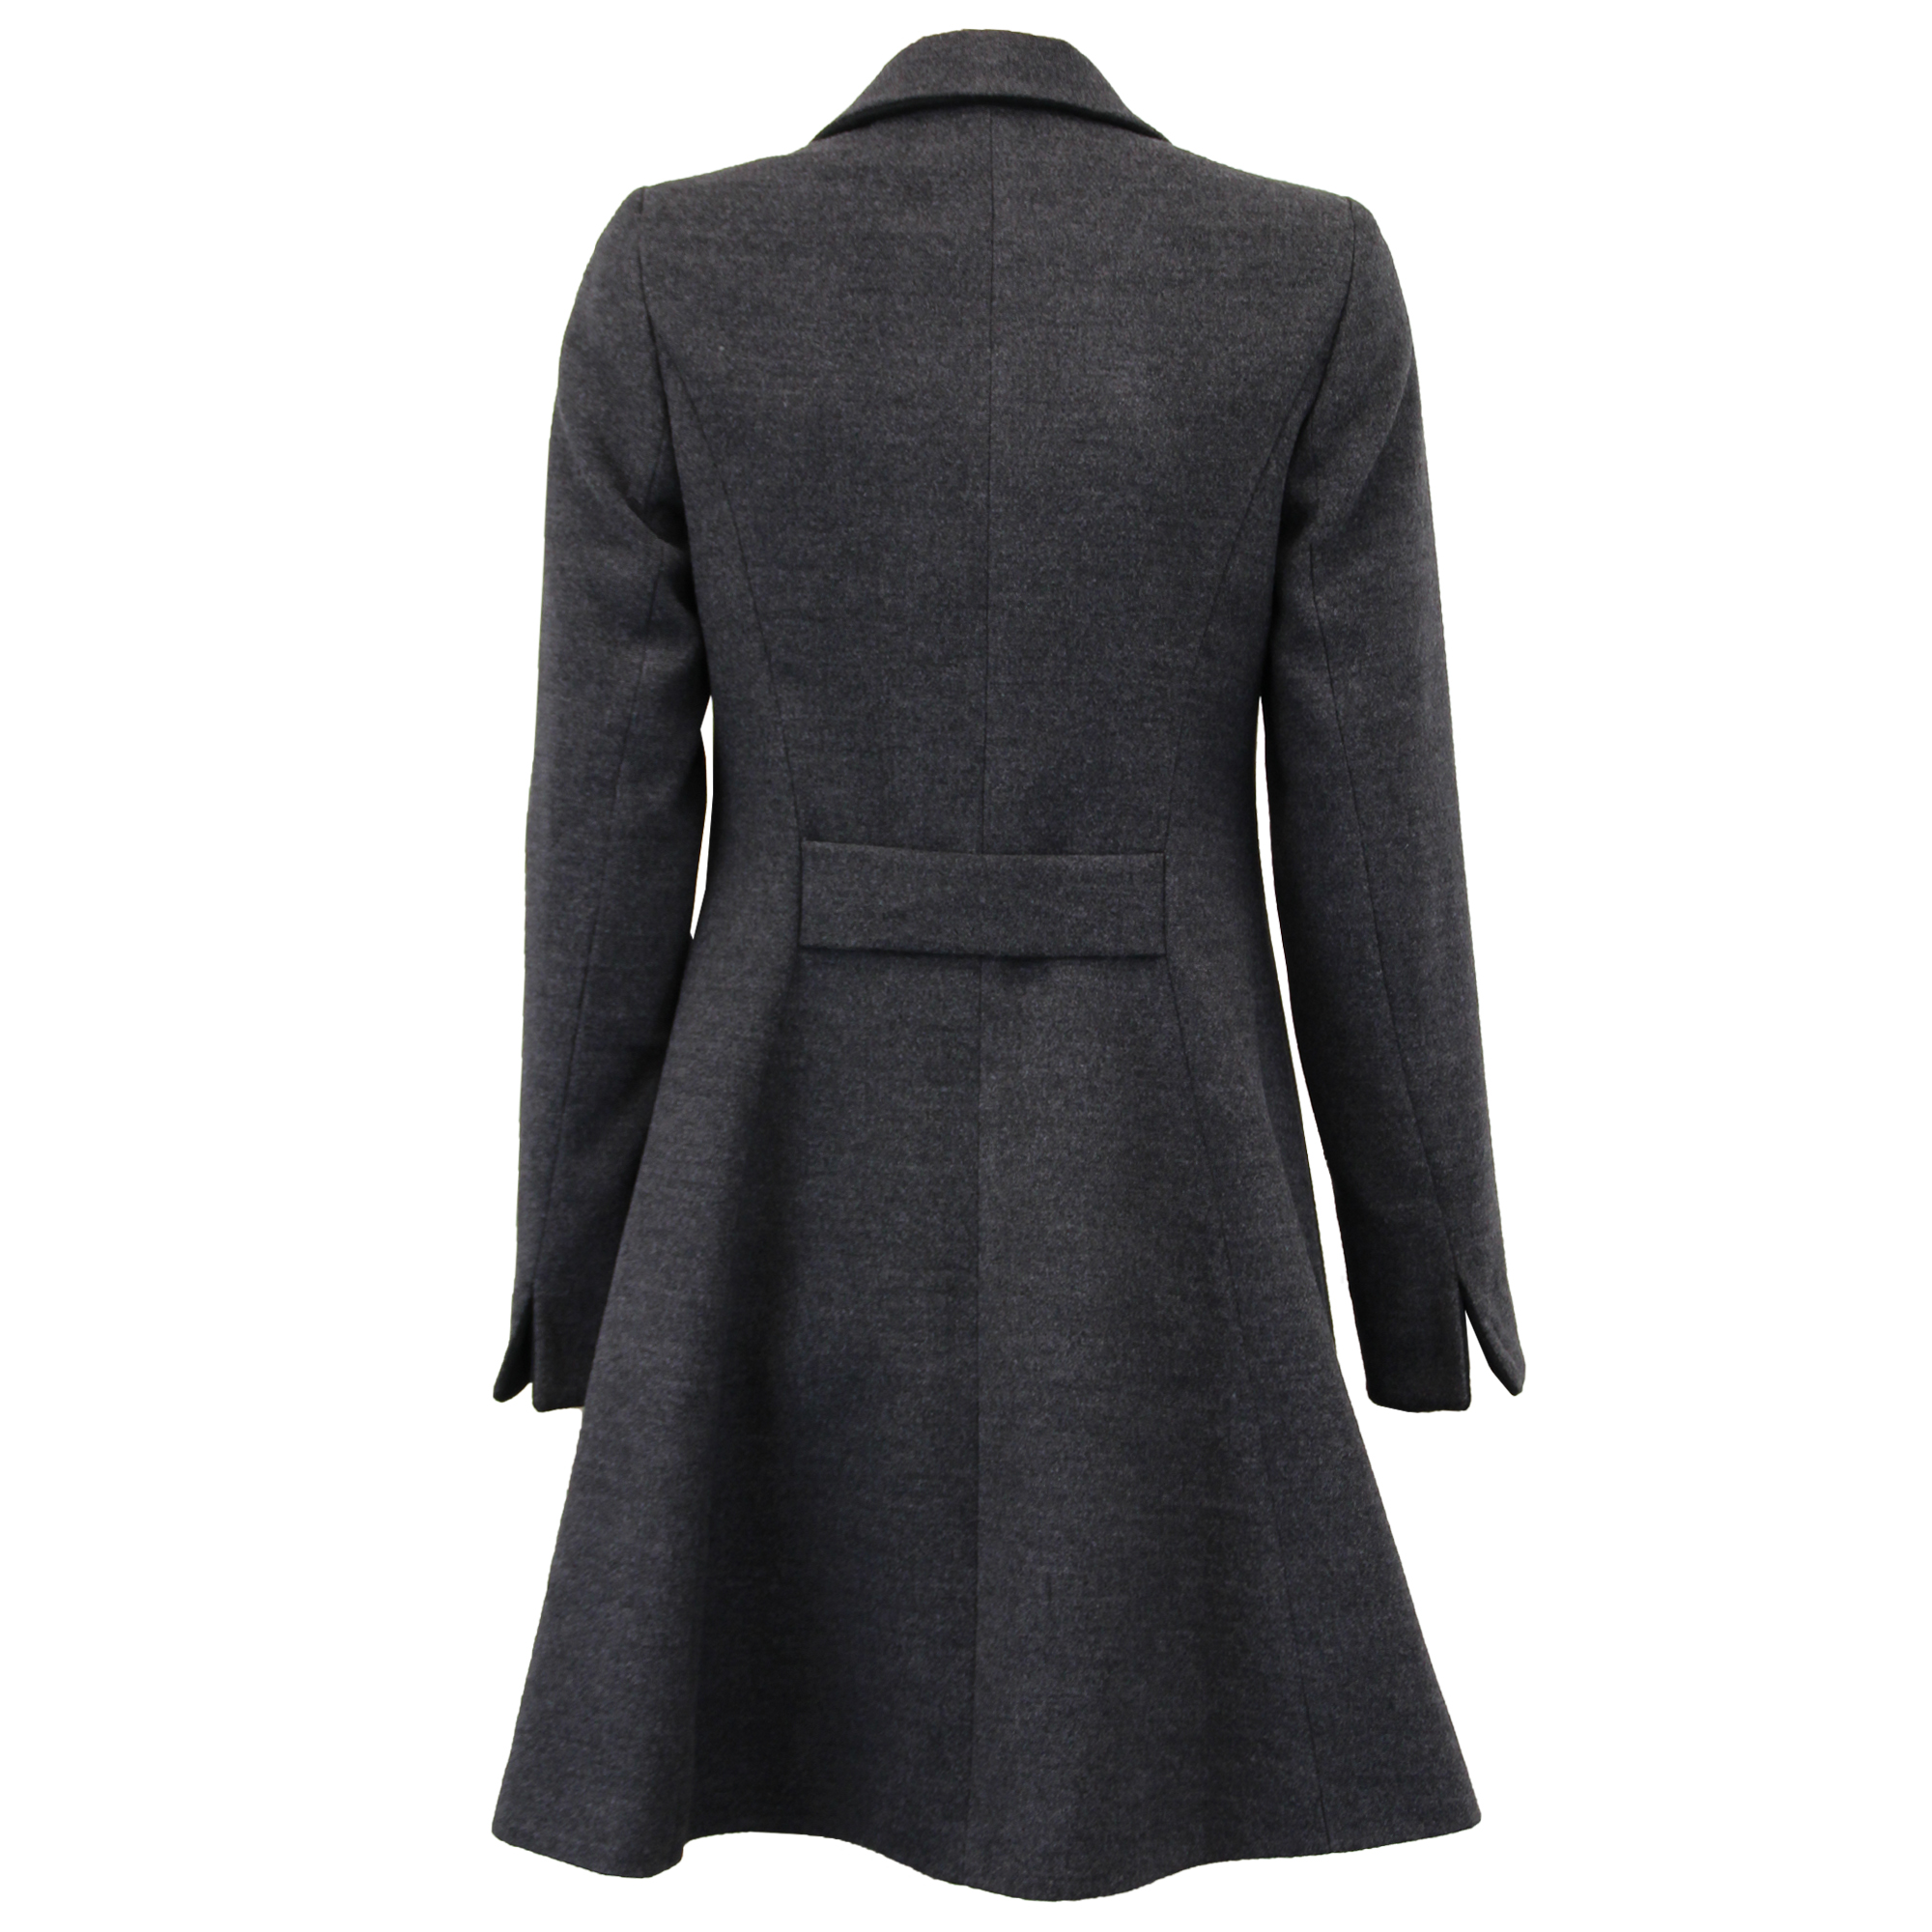 Find great deals on eBay for long wool winter coats. Shop with confidence. Skip to main content. eBay: Shop by category. New Listing Fashion Elegant Women Long Wool Trench Coat Winter V-Neck Cardigan Coat Outwear. Brand New. $ From China. Buy It Now. More colors. Free Shipping. SPONSORED.